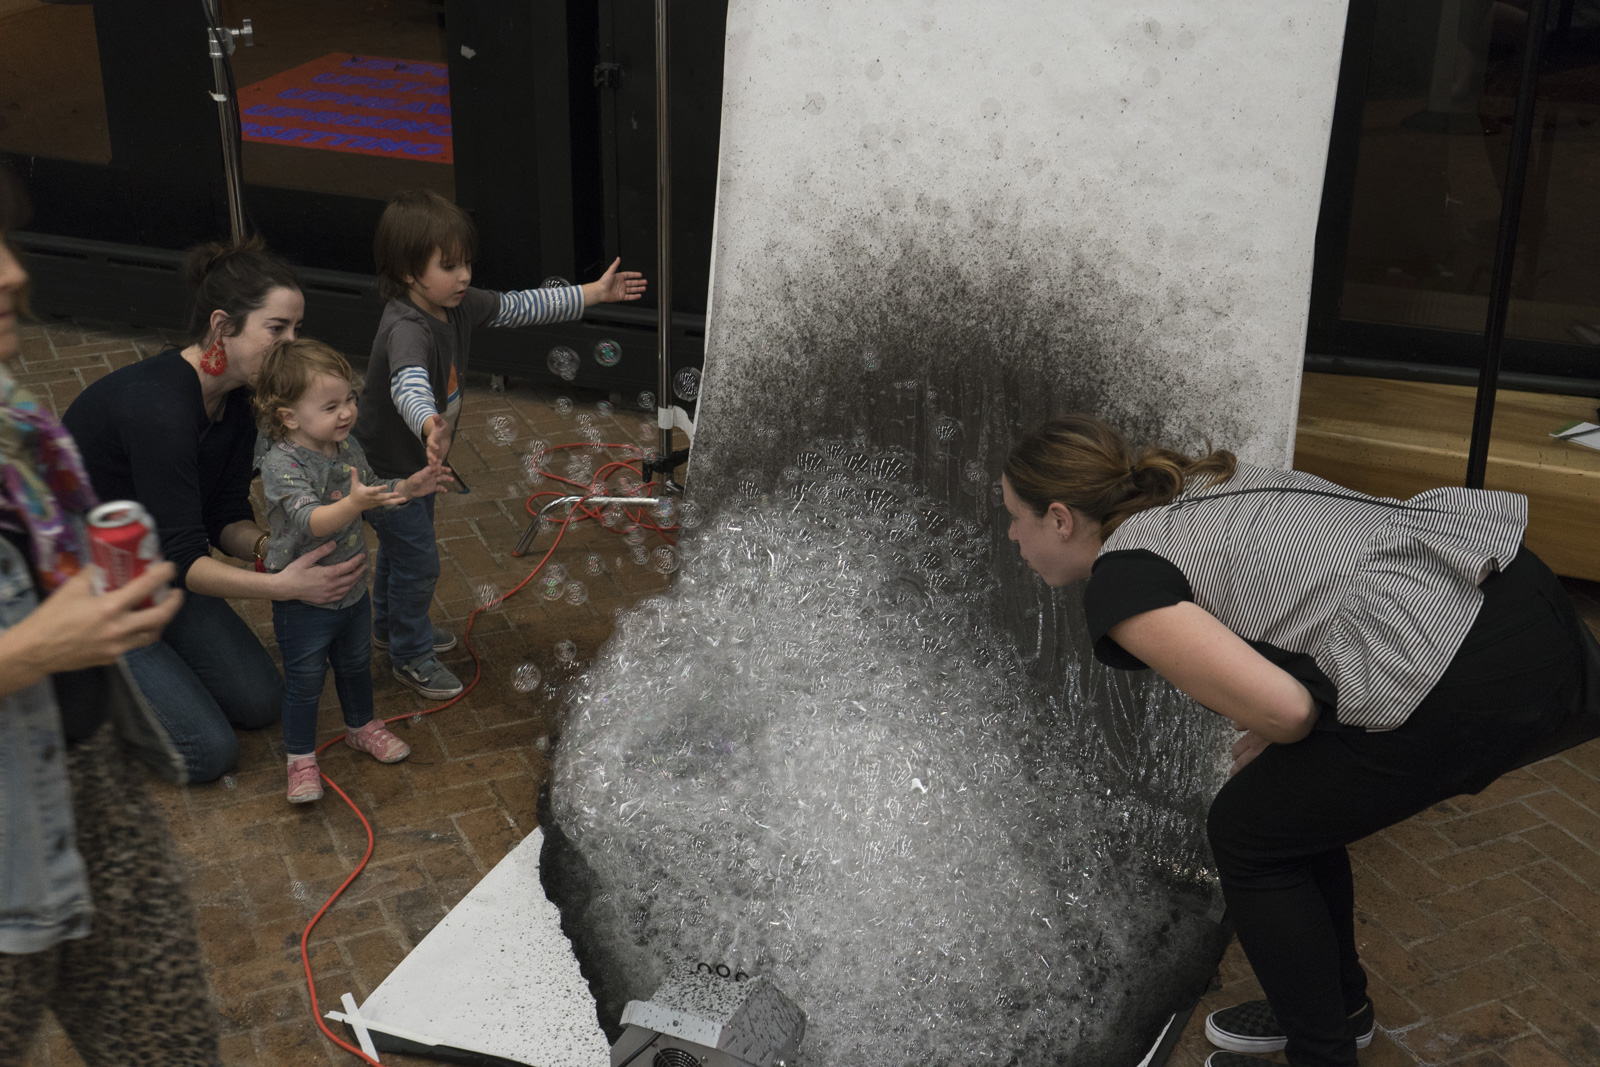 Guests playing with Jing Lin's bubble machine.